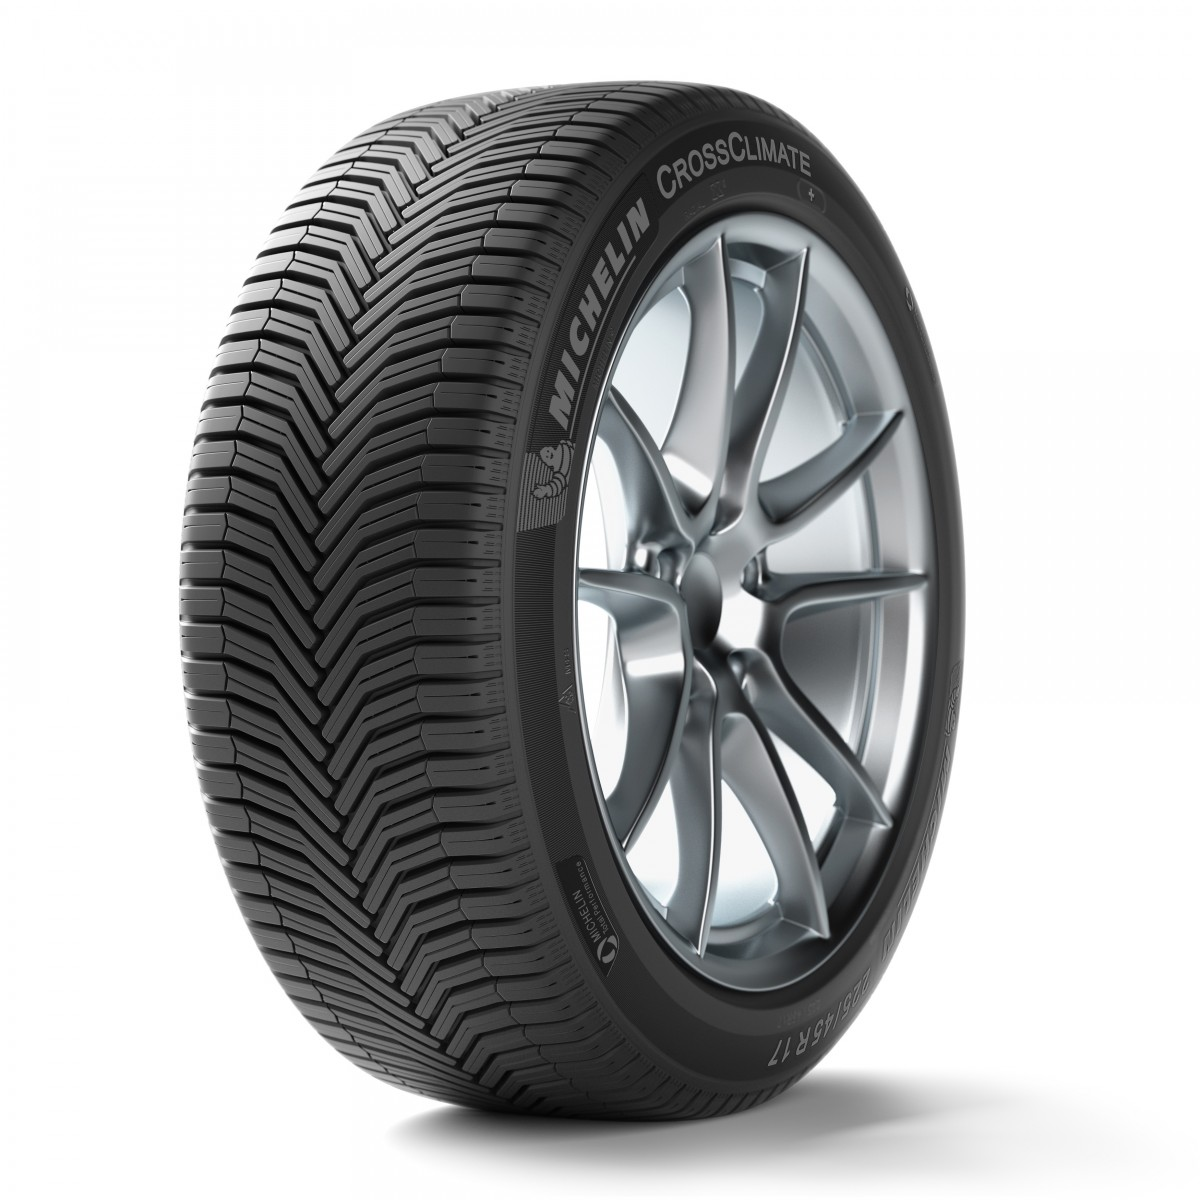 Anvelope Michelin Crossclimate+ 235/50R18 101Y All Season